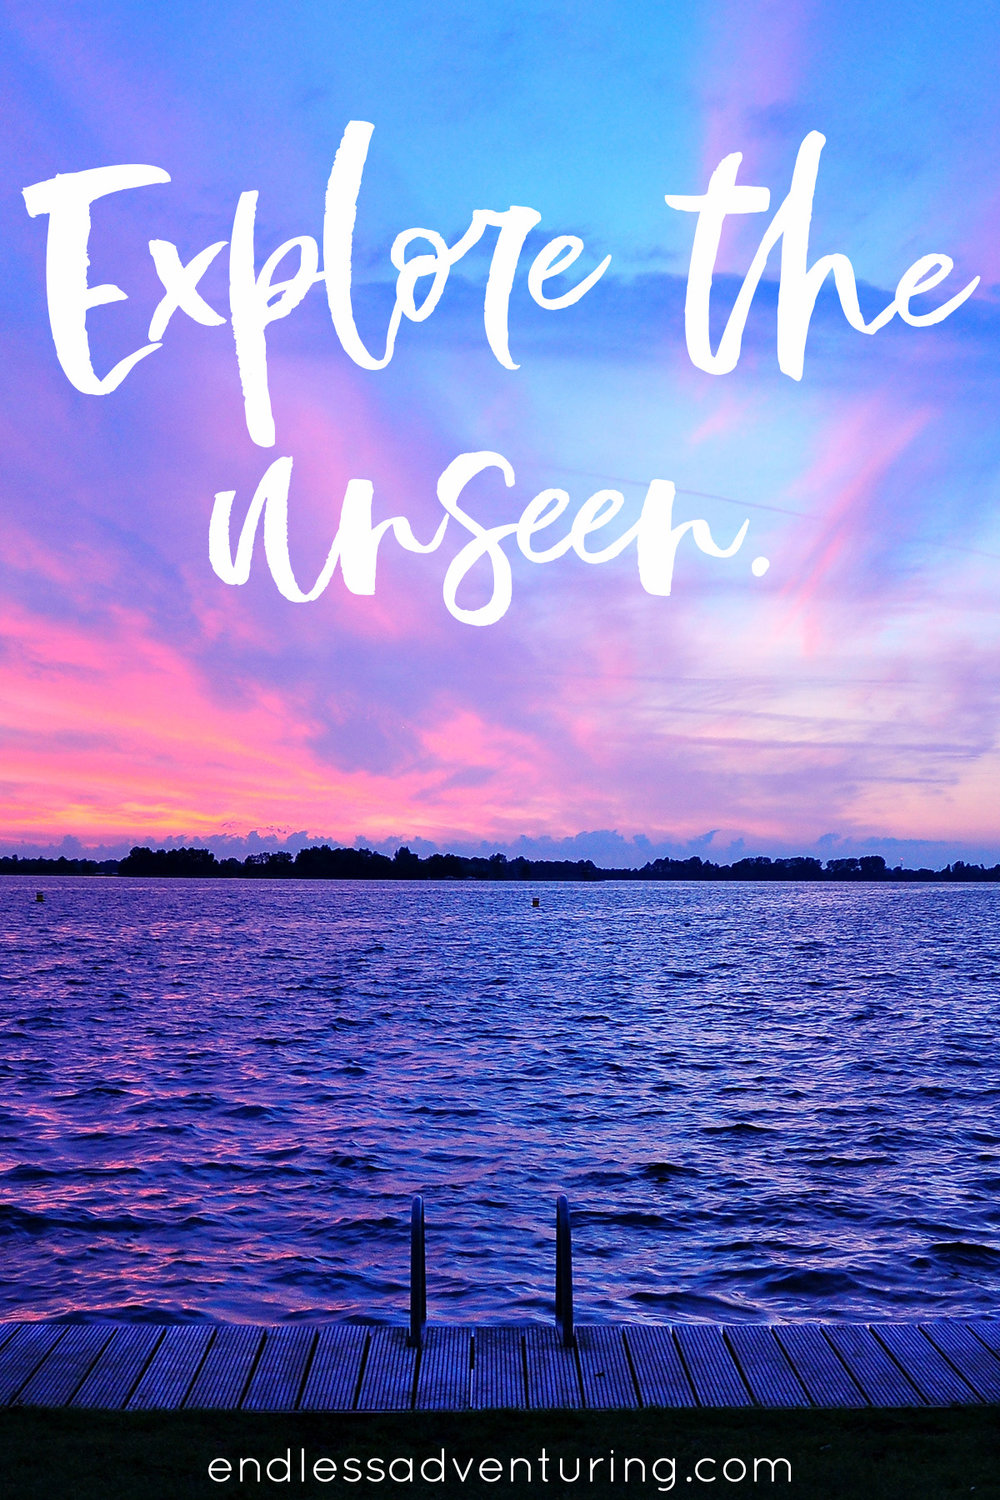 Adventure Quote - Explore The Unseen